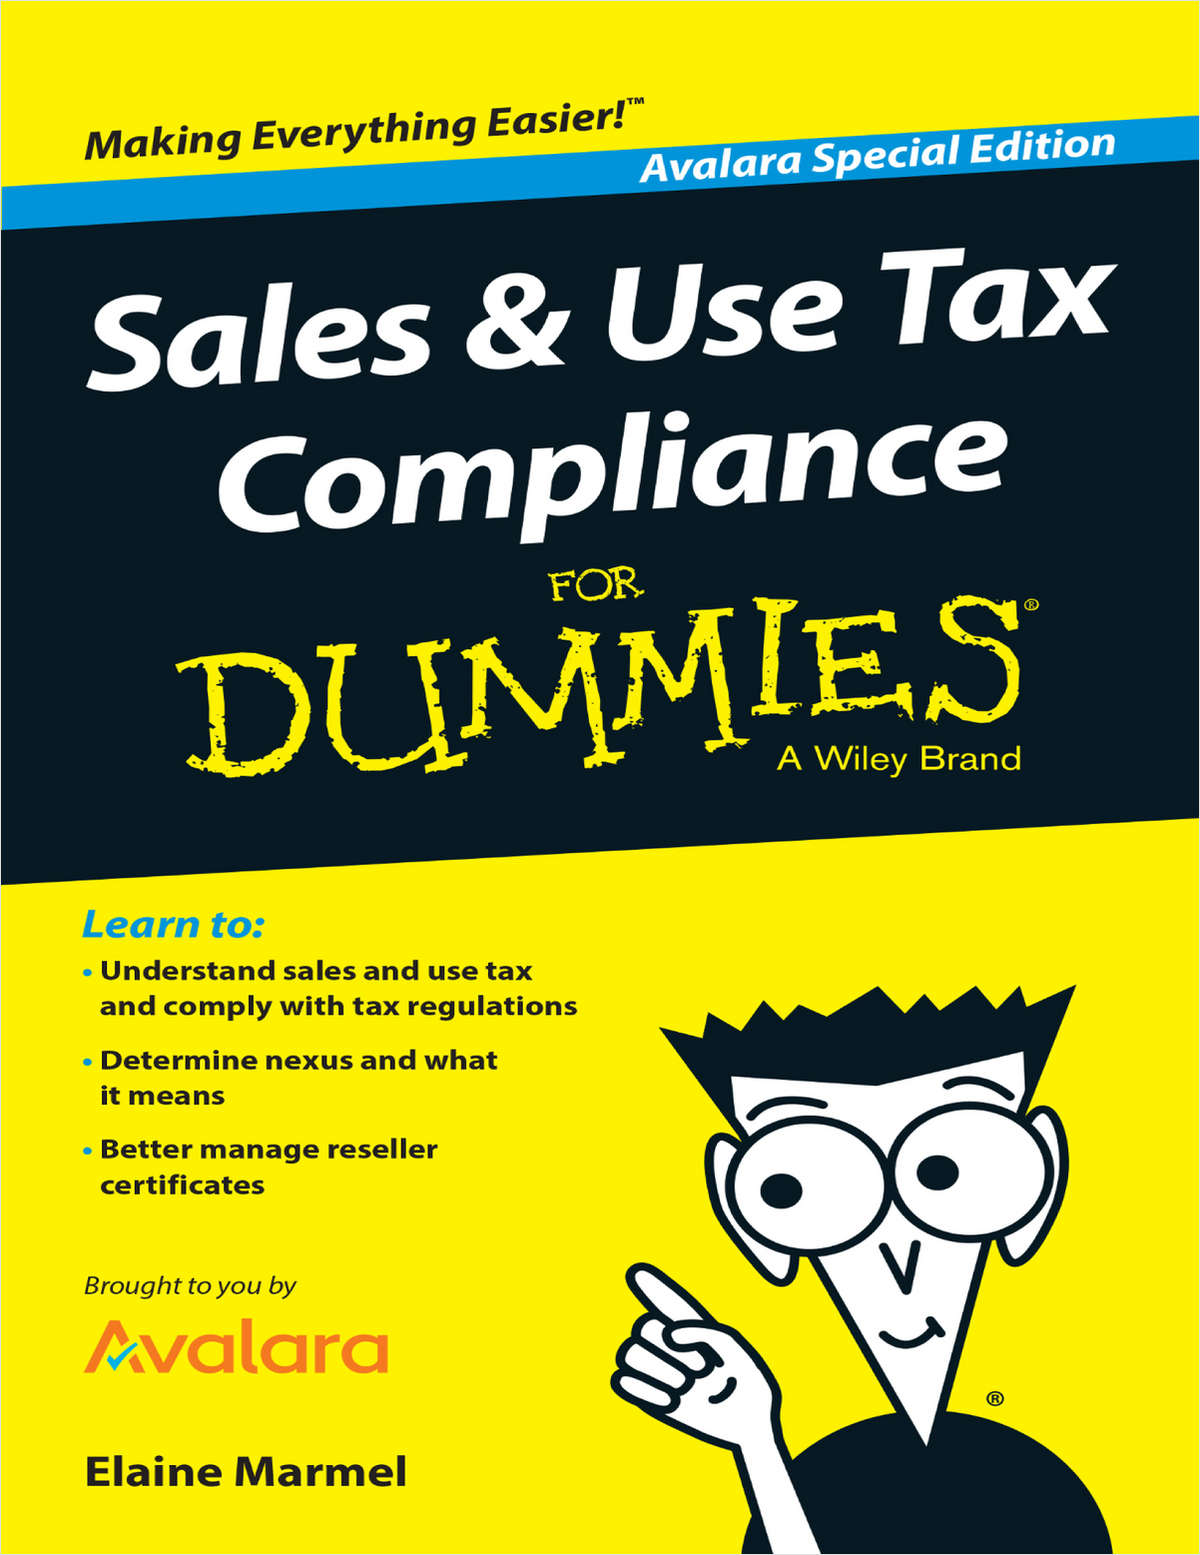 Sales & Use Tax Compliance For Dummies